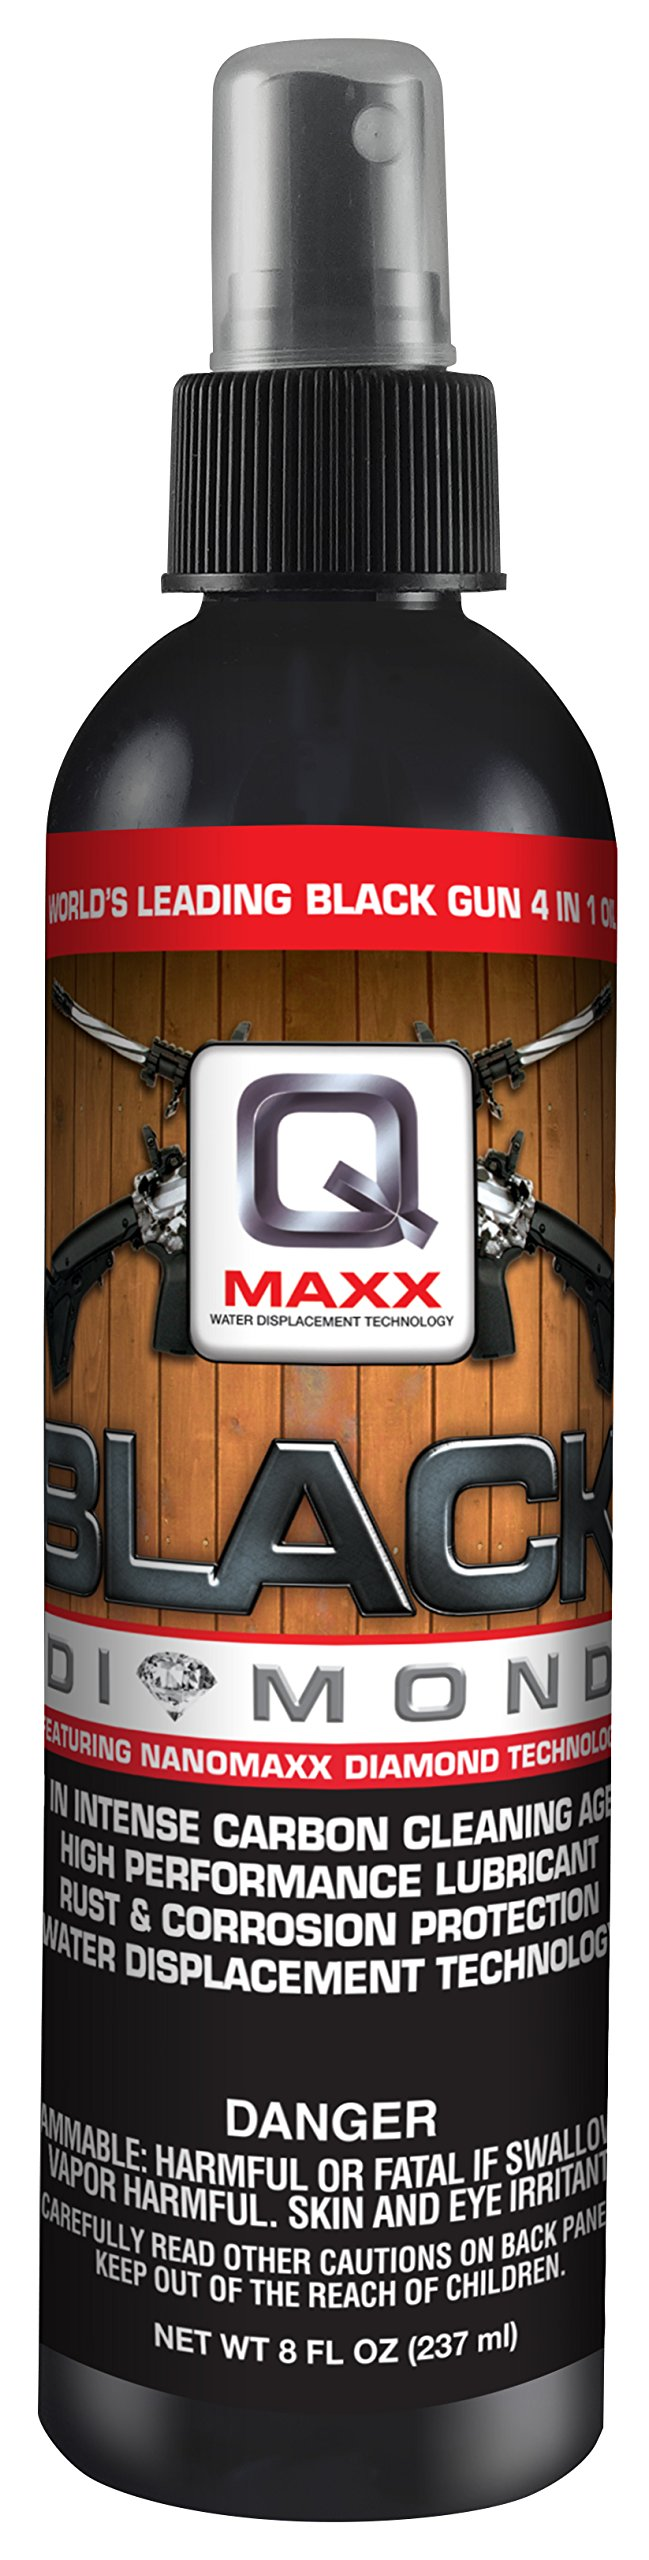 QMAXX Black Diamond Pump Spray, 8 OZ by QMAXX